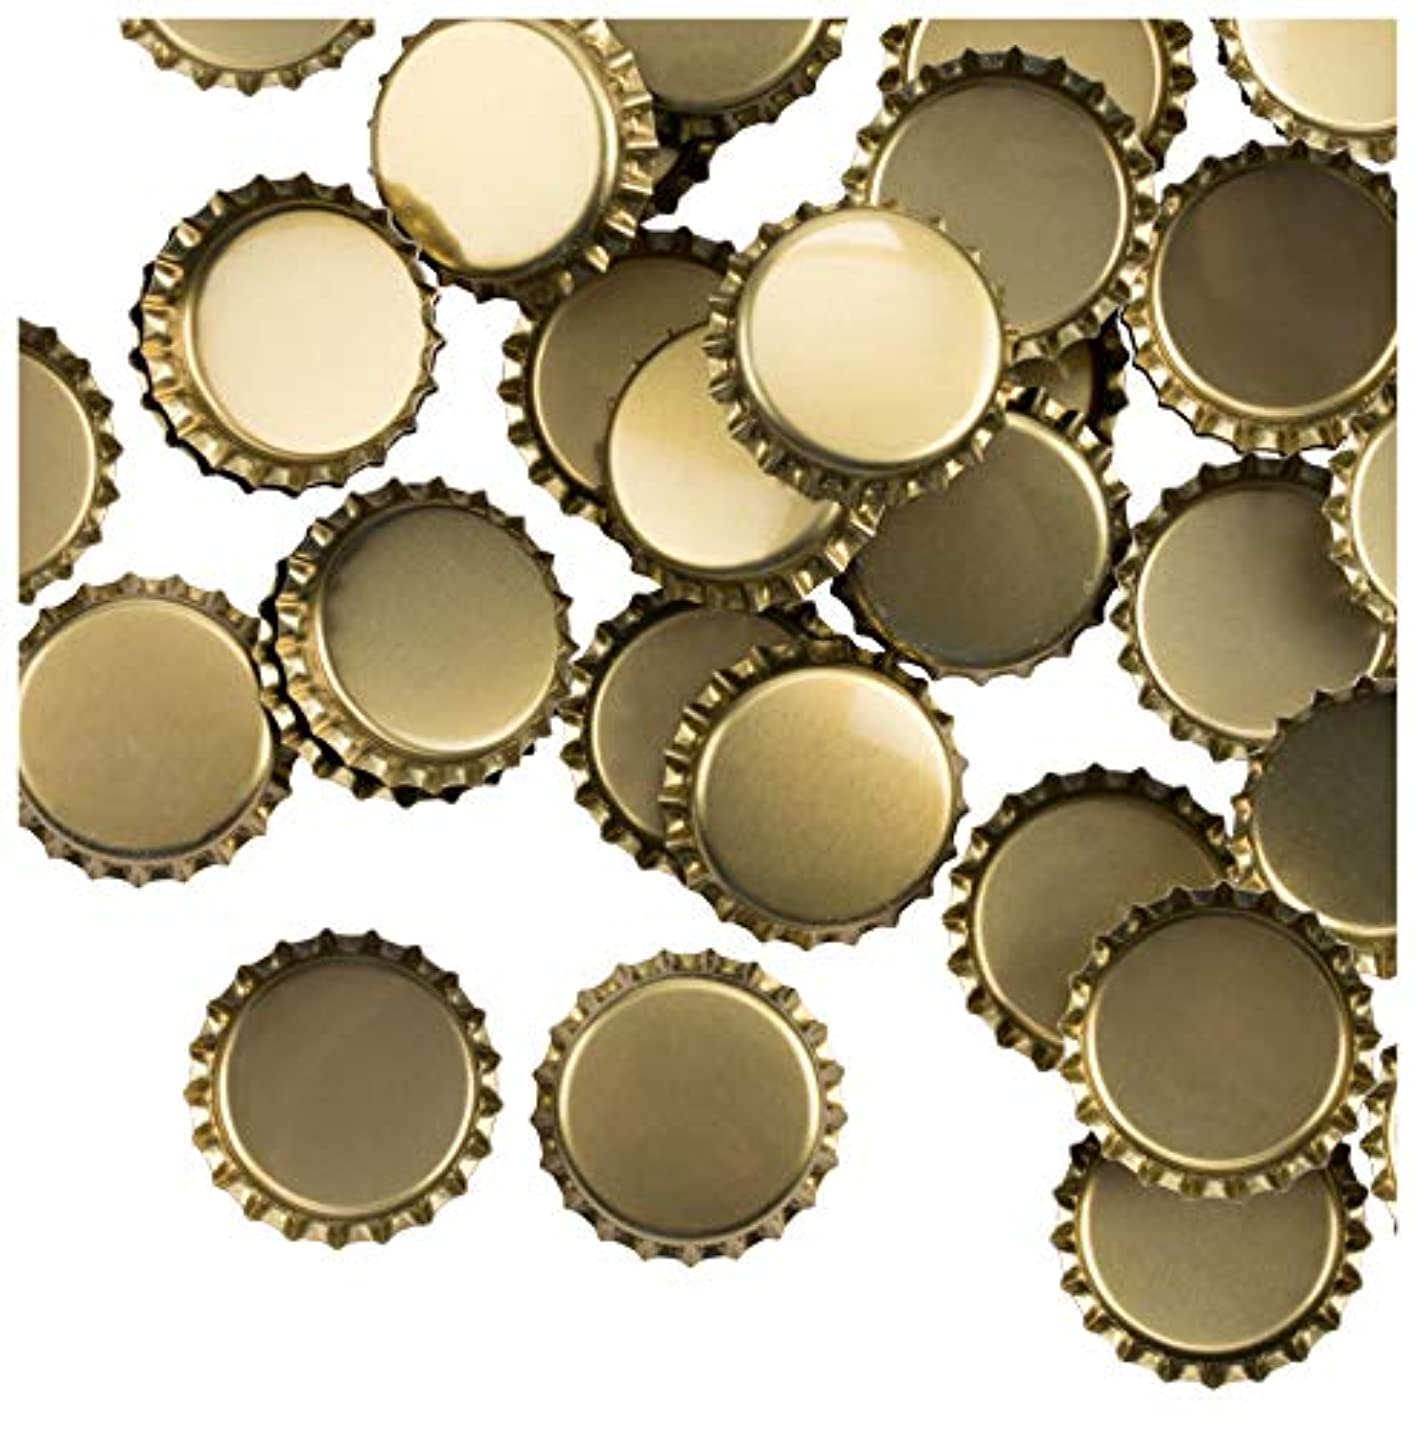 Bottle Caps- 120-Pack Craft Crown Bottle Caps, Decorative Bottle Caps, Perfect for Jewelry Making, Hairbows, Pendants DIY, Scrapbooking, Gold, 1 Inch Diameter